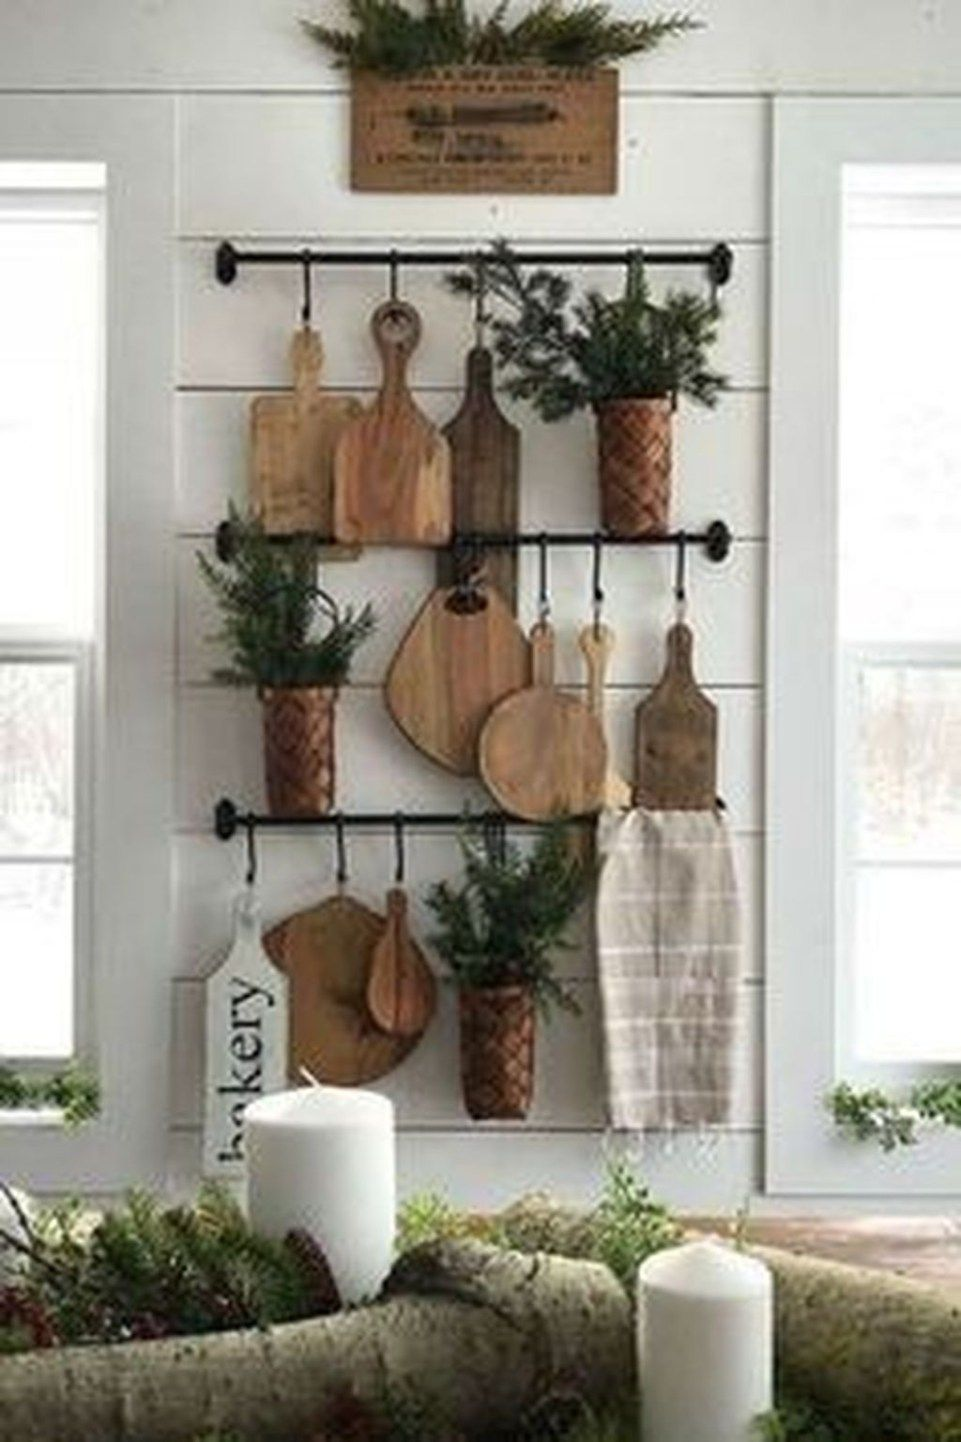 30 Stunning Traditional Farmhouse Decor Ideas For Your ... on Traditional Kitchen Wall Decor  id=40598